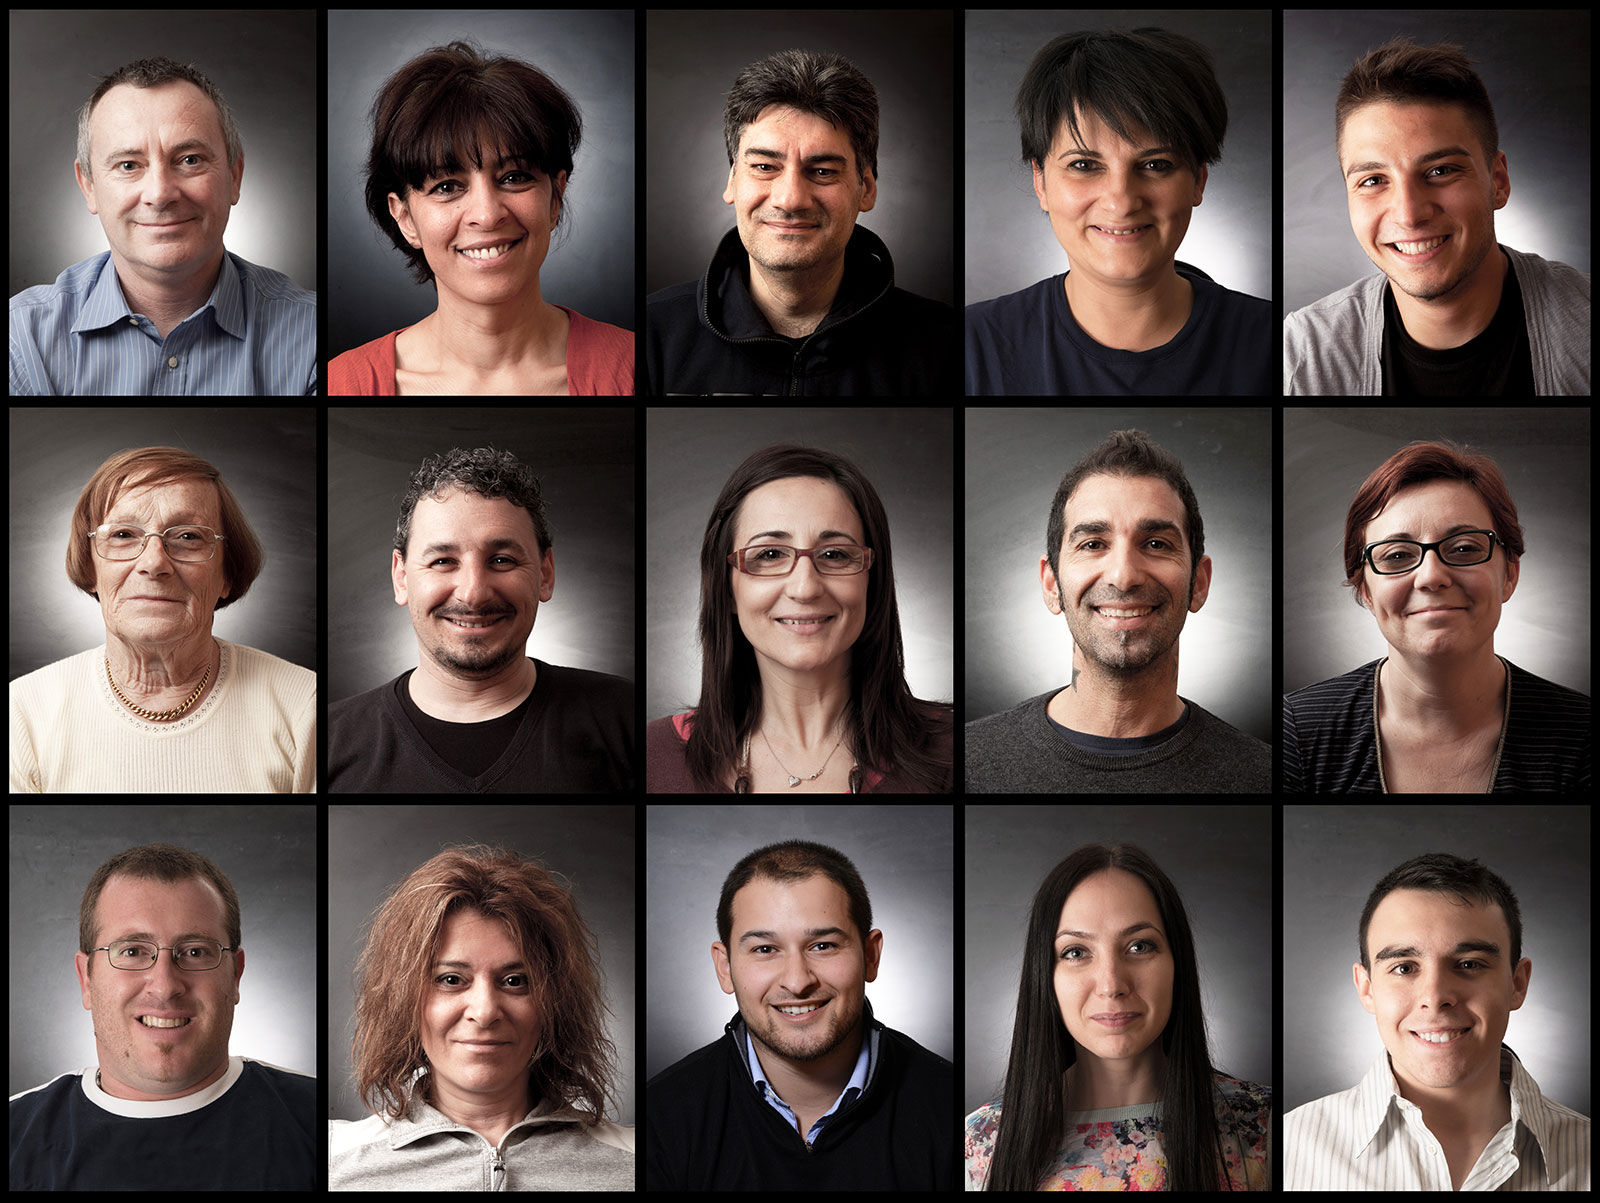 Collage of headshots of diverse adult care providers